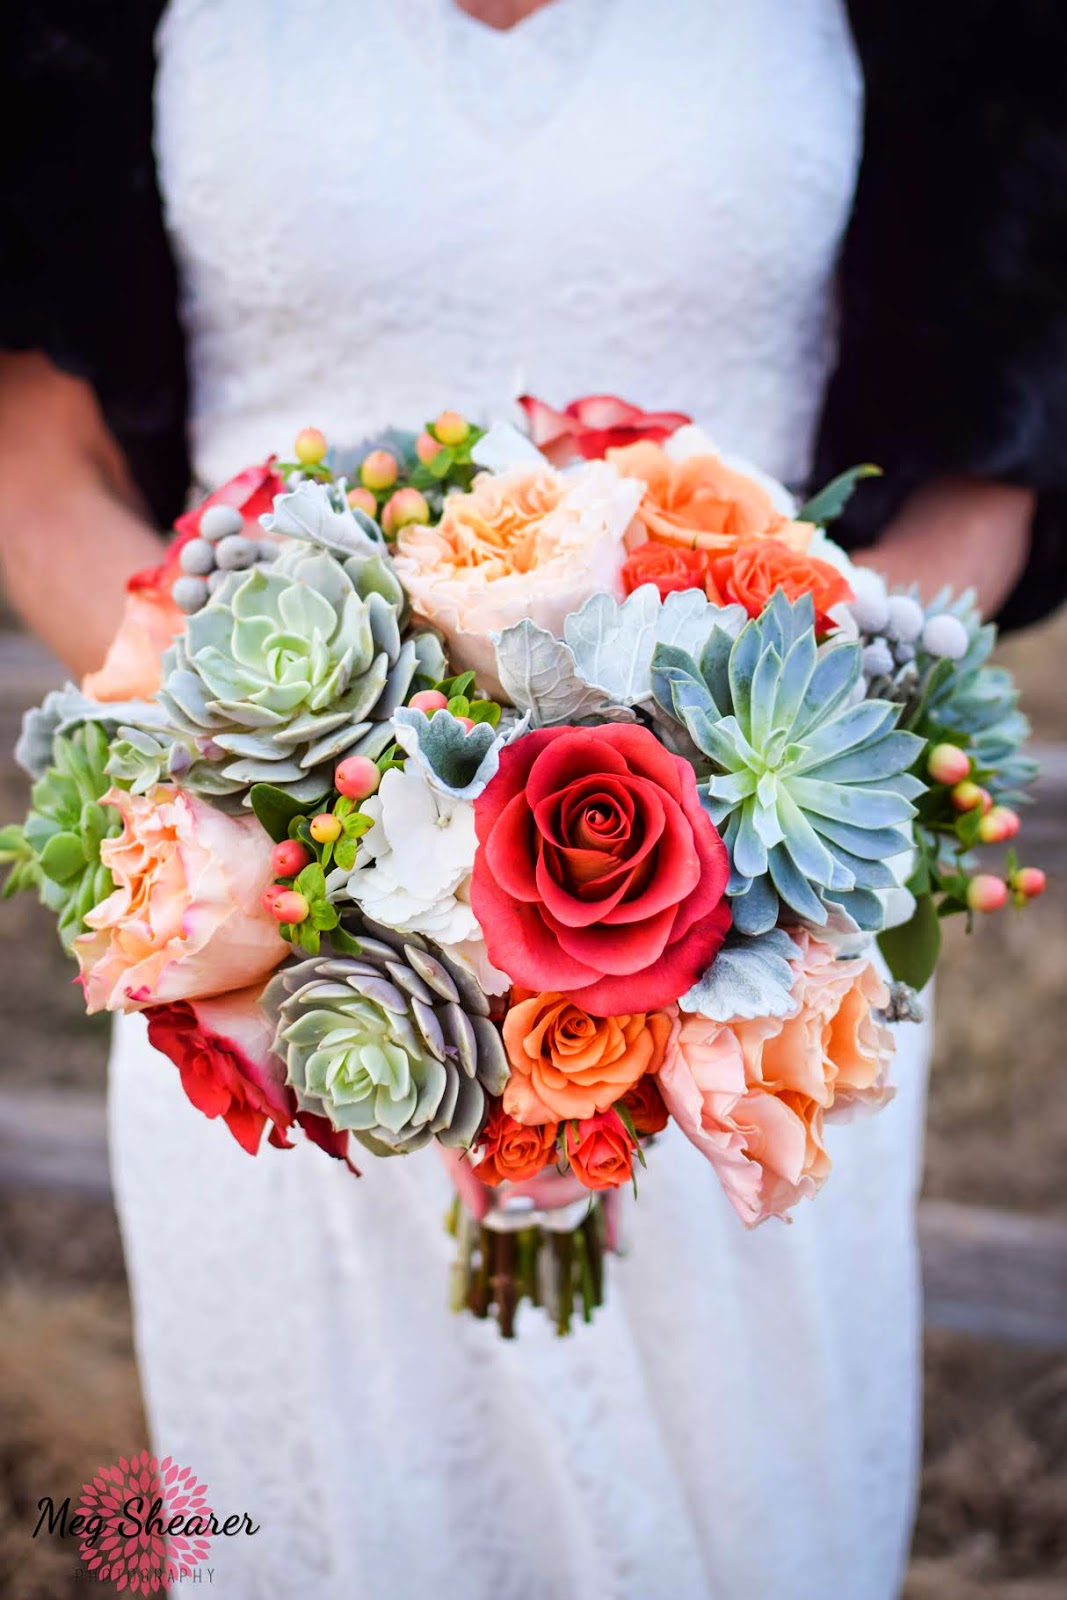 i loved this beautiful winter wedding my last bouquet of 2014 ended up being one of my very favorites such a stunner